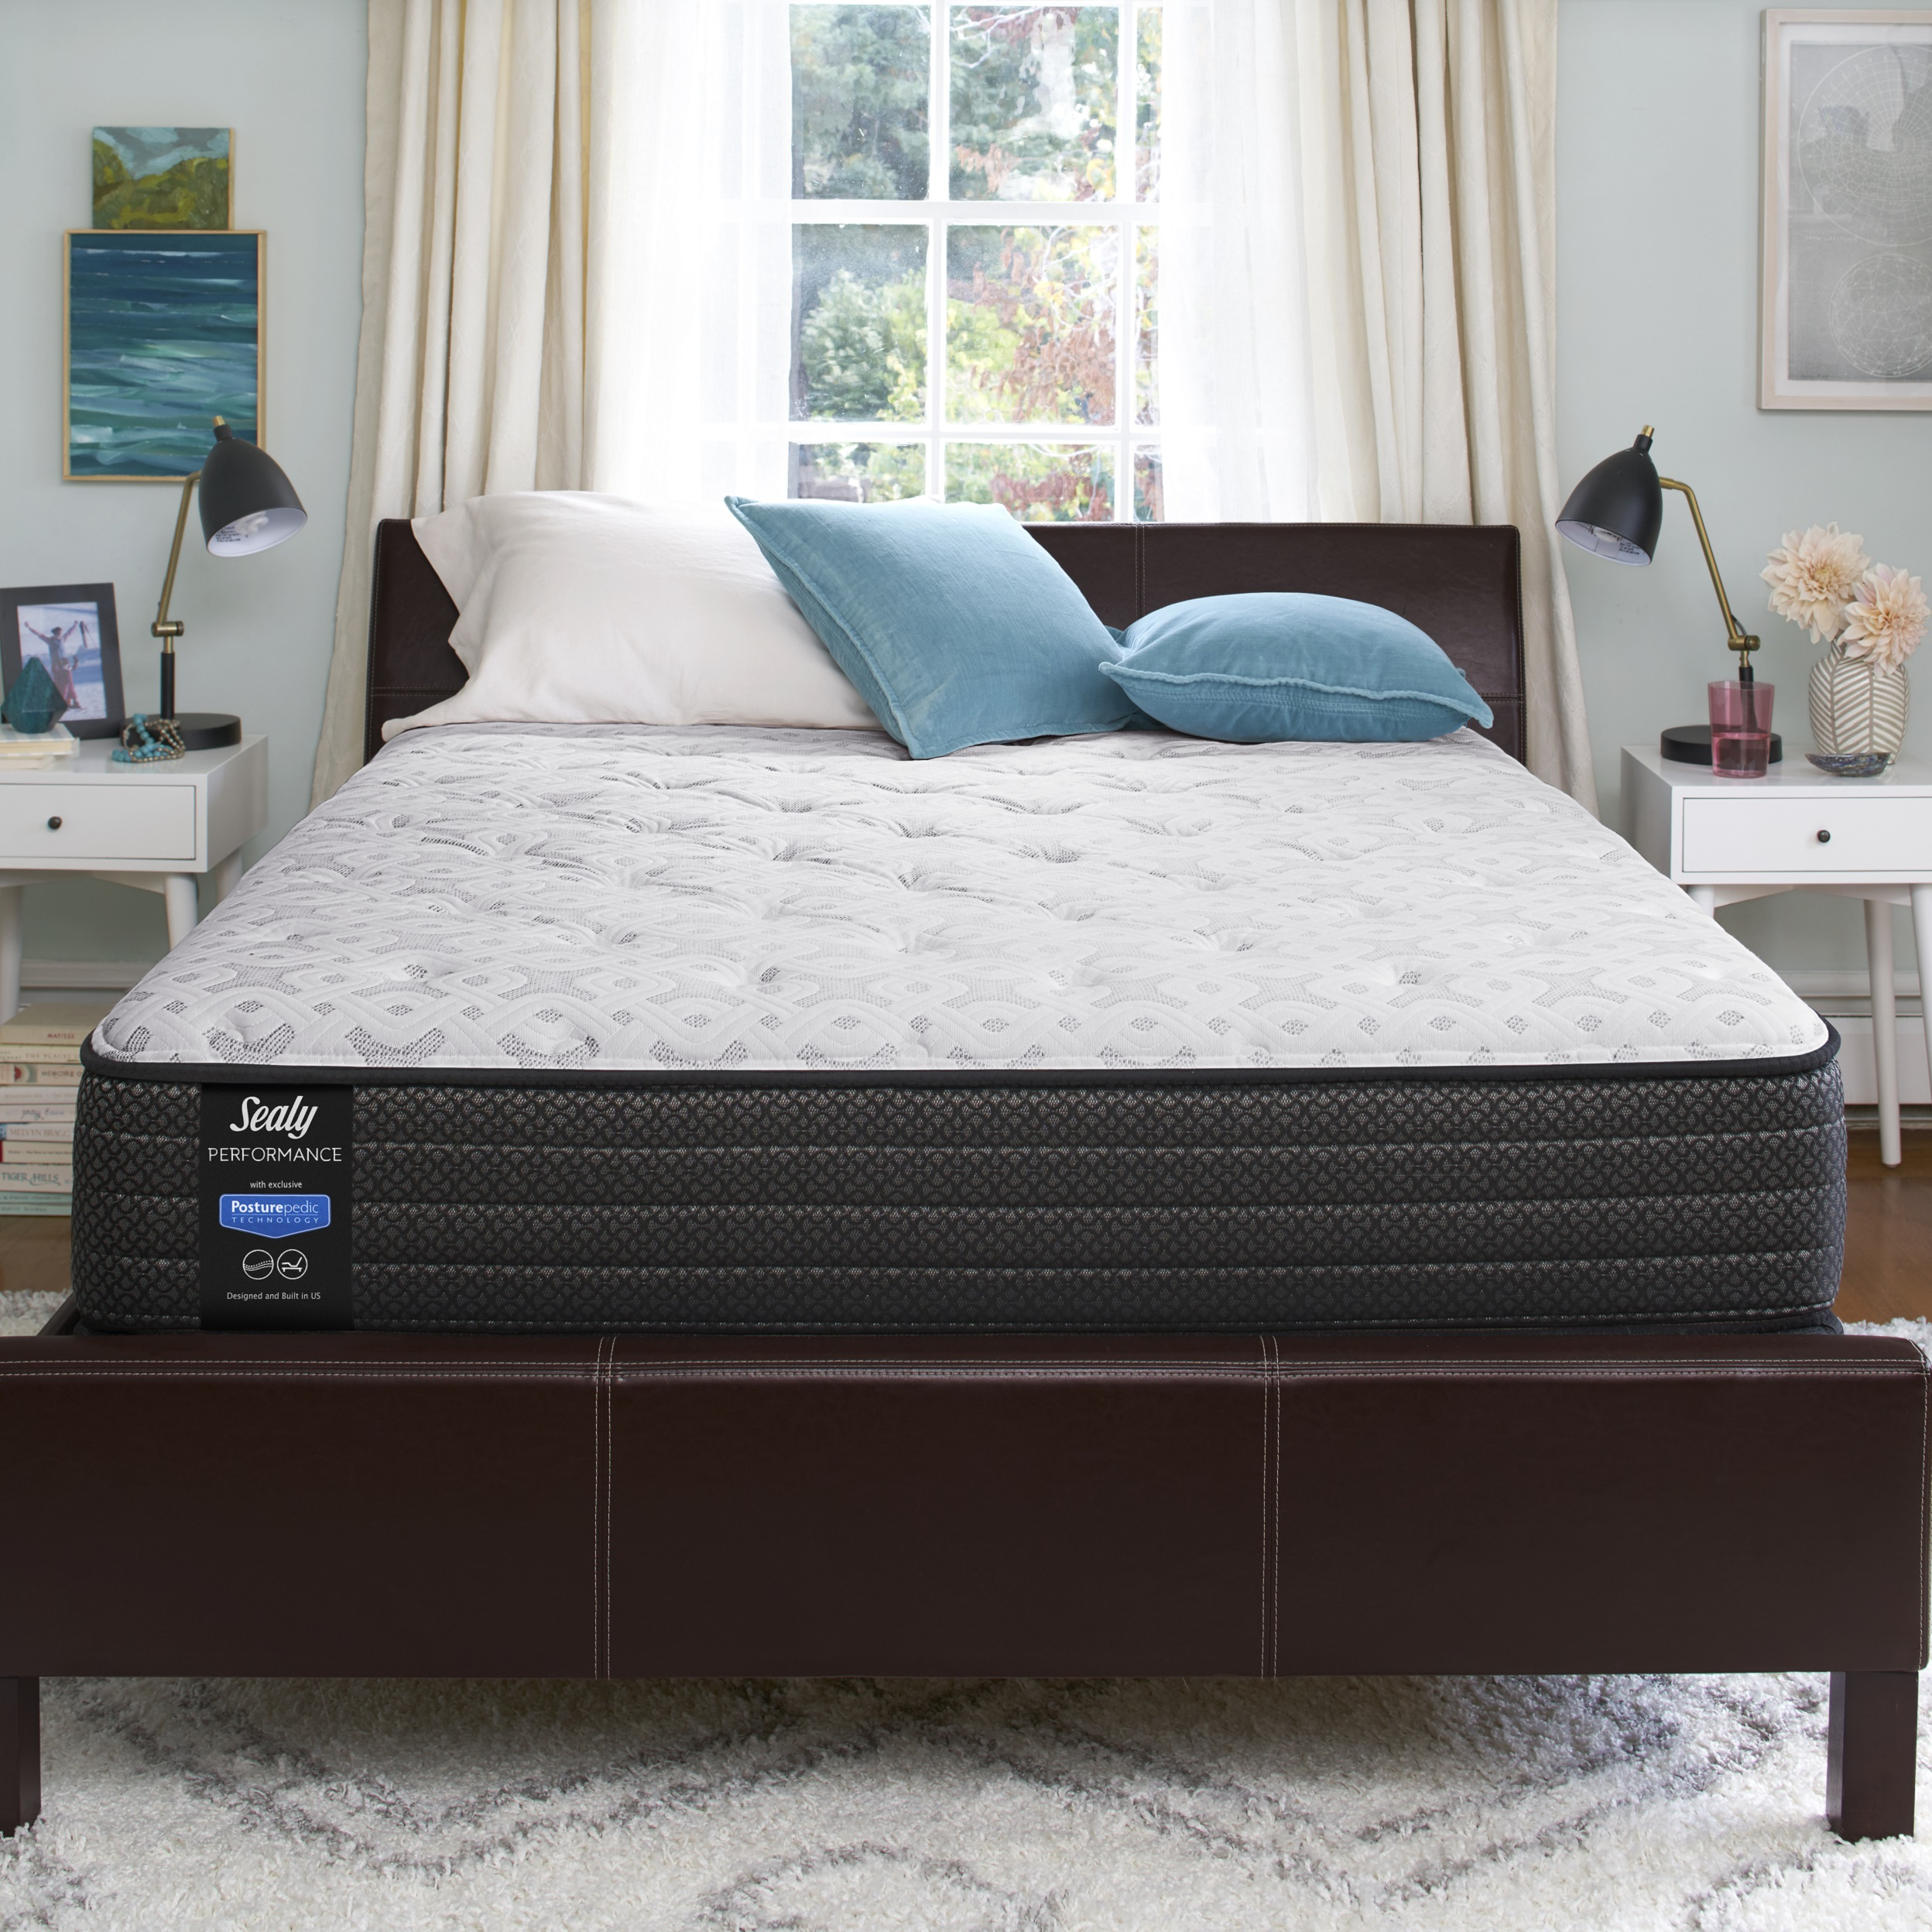 Sealy Response Performance 12 Inch Cushion Firm Tight Top Innerspring Mattress by Sealy